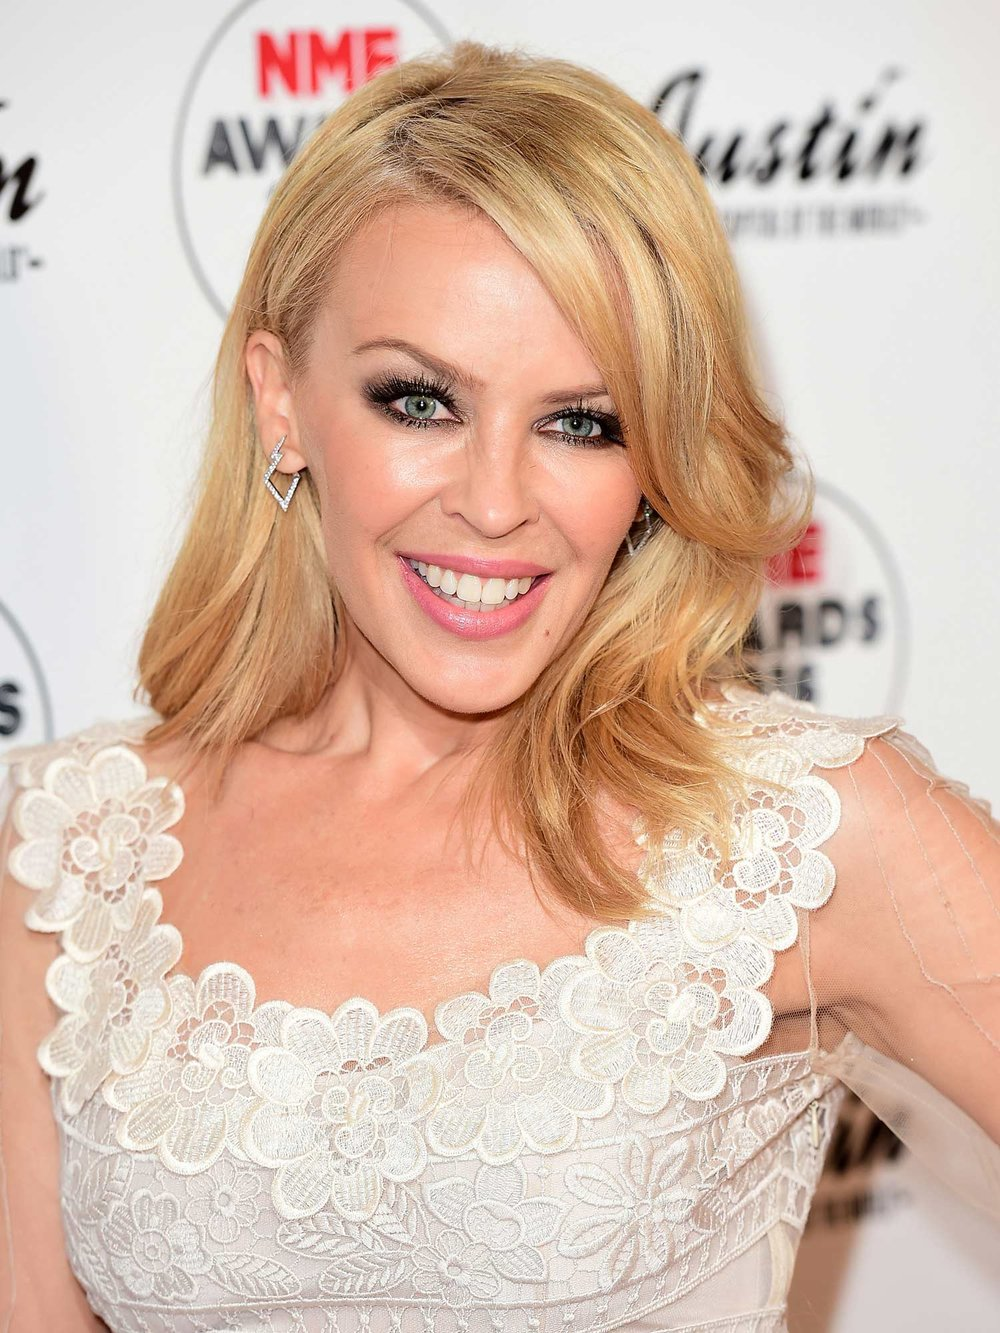 Kylie Minogue got fanmail from the Taoiseach.